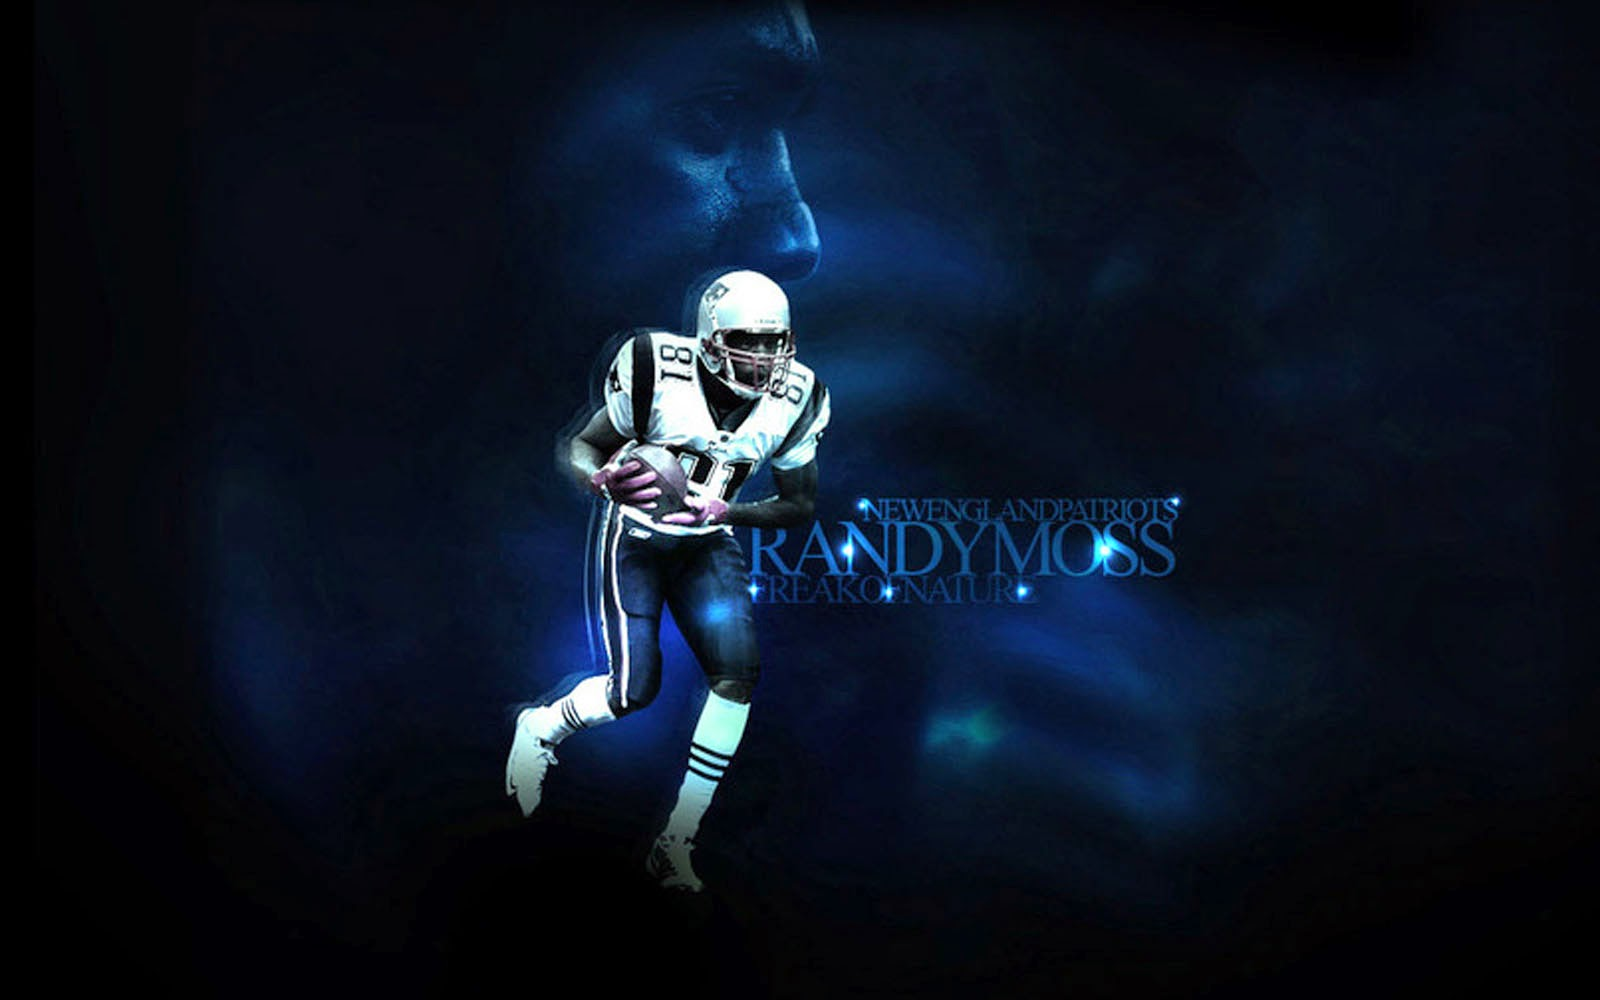 wallpapers american football player randy moss wallpapers